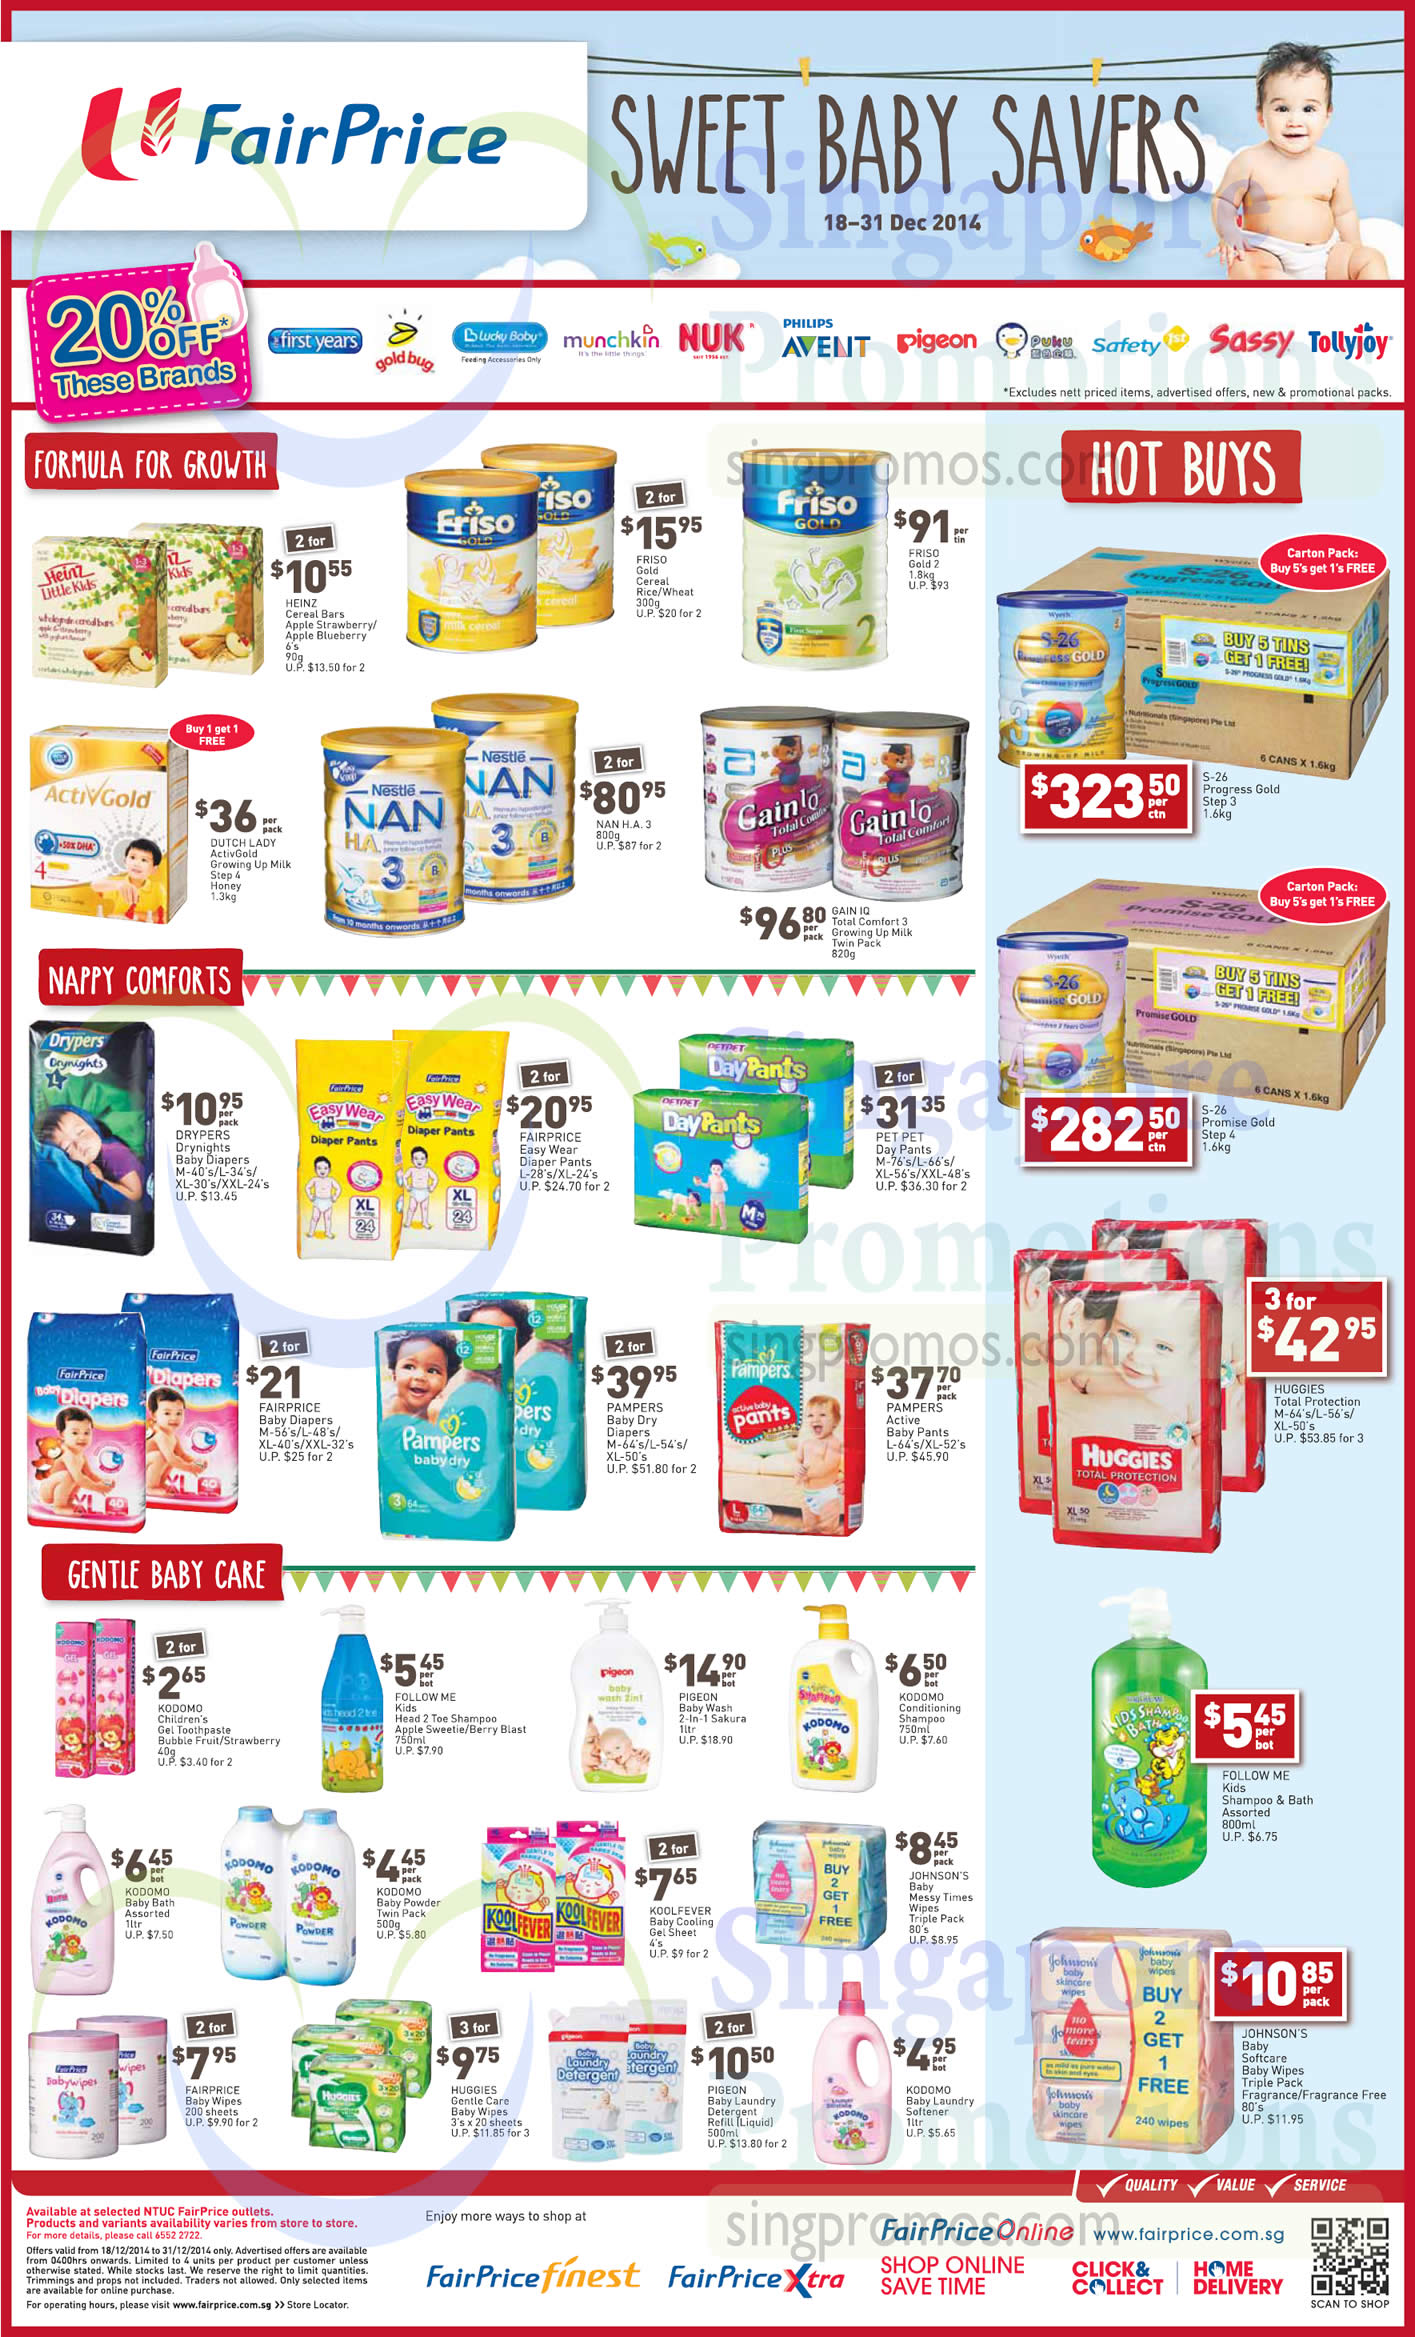 Friso Gold 2, Dutch Lady ActivGold Growing Up Milk Step 4 Honey, Nestle NAN H.A. 3, Abbott Gain IQ Total Comfort 3 Growing Up Milk Twin Pack, Pet Pet Day Pants, Pampers Baby Dry Diapers, Pampers Active Baby Pants, S-26 Progress Gold Step 3, S-26 Promise Gold Step 4, Huggies Total Protection